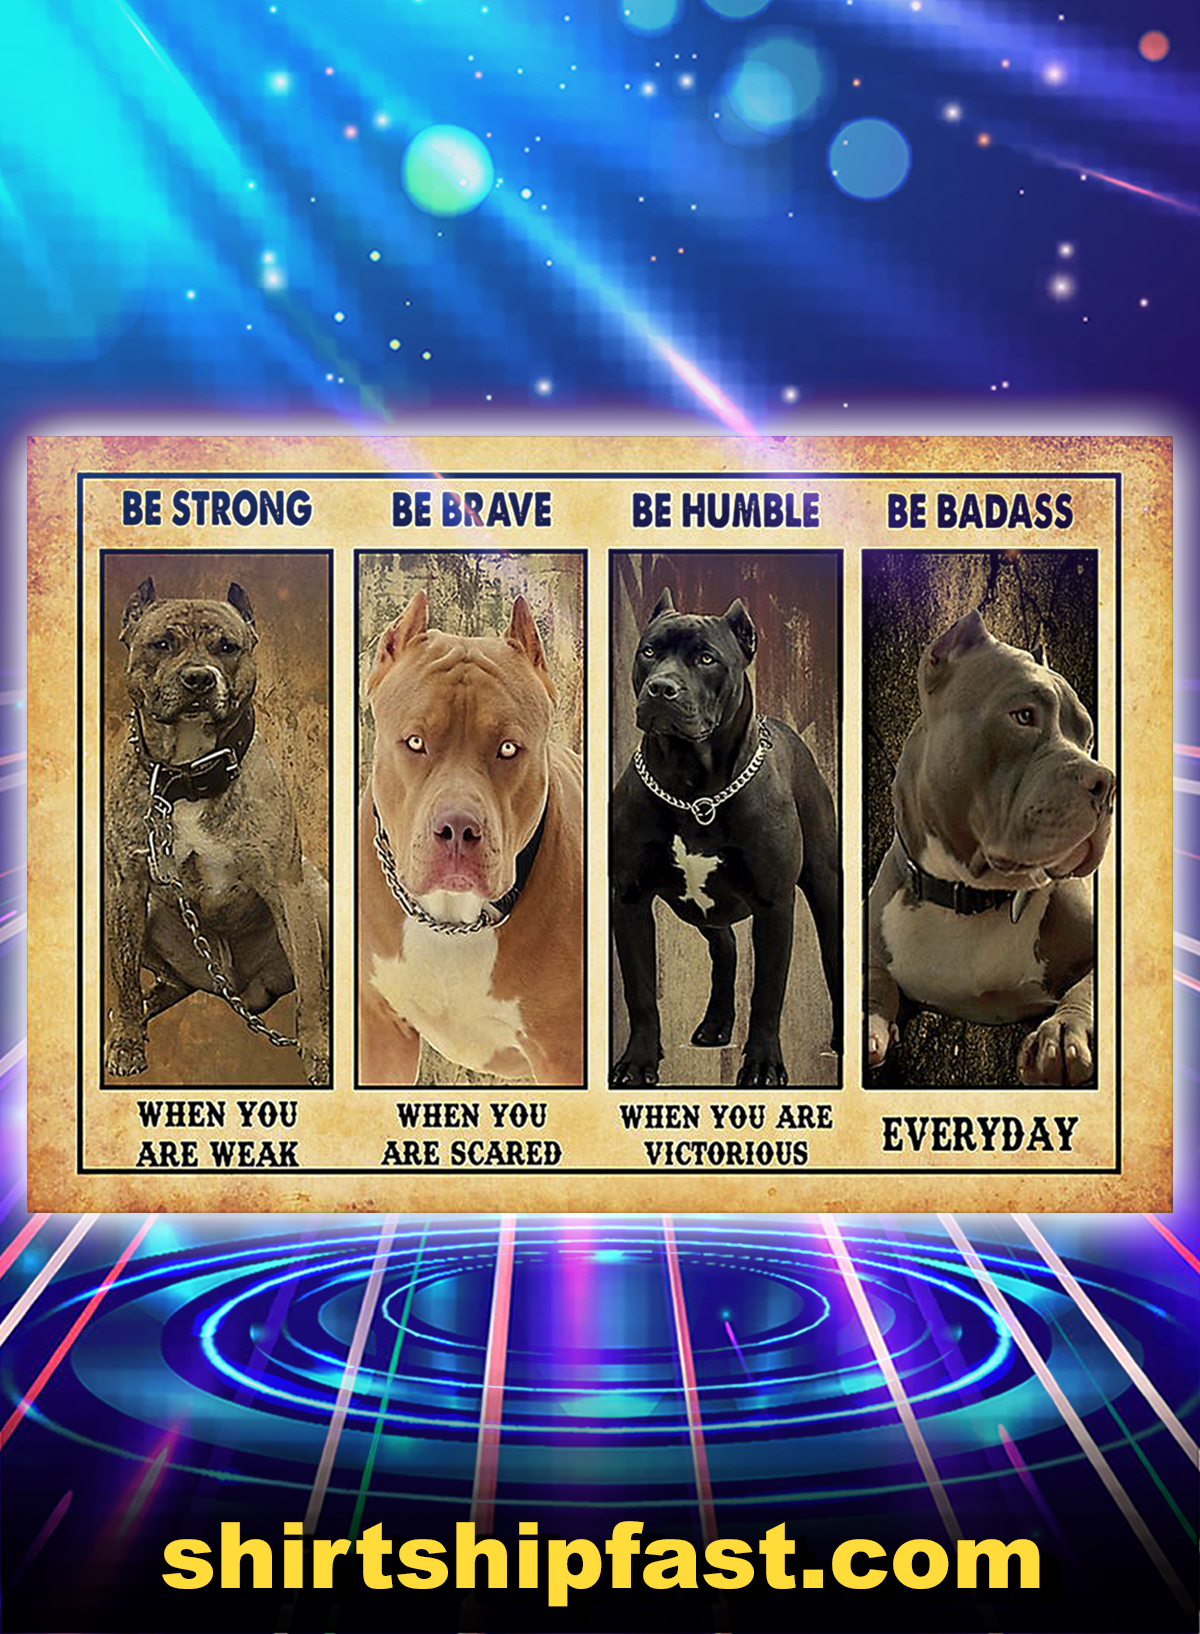 Pitbull be strong be brave be humble be badass poster - A1